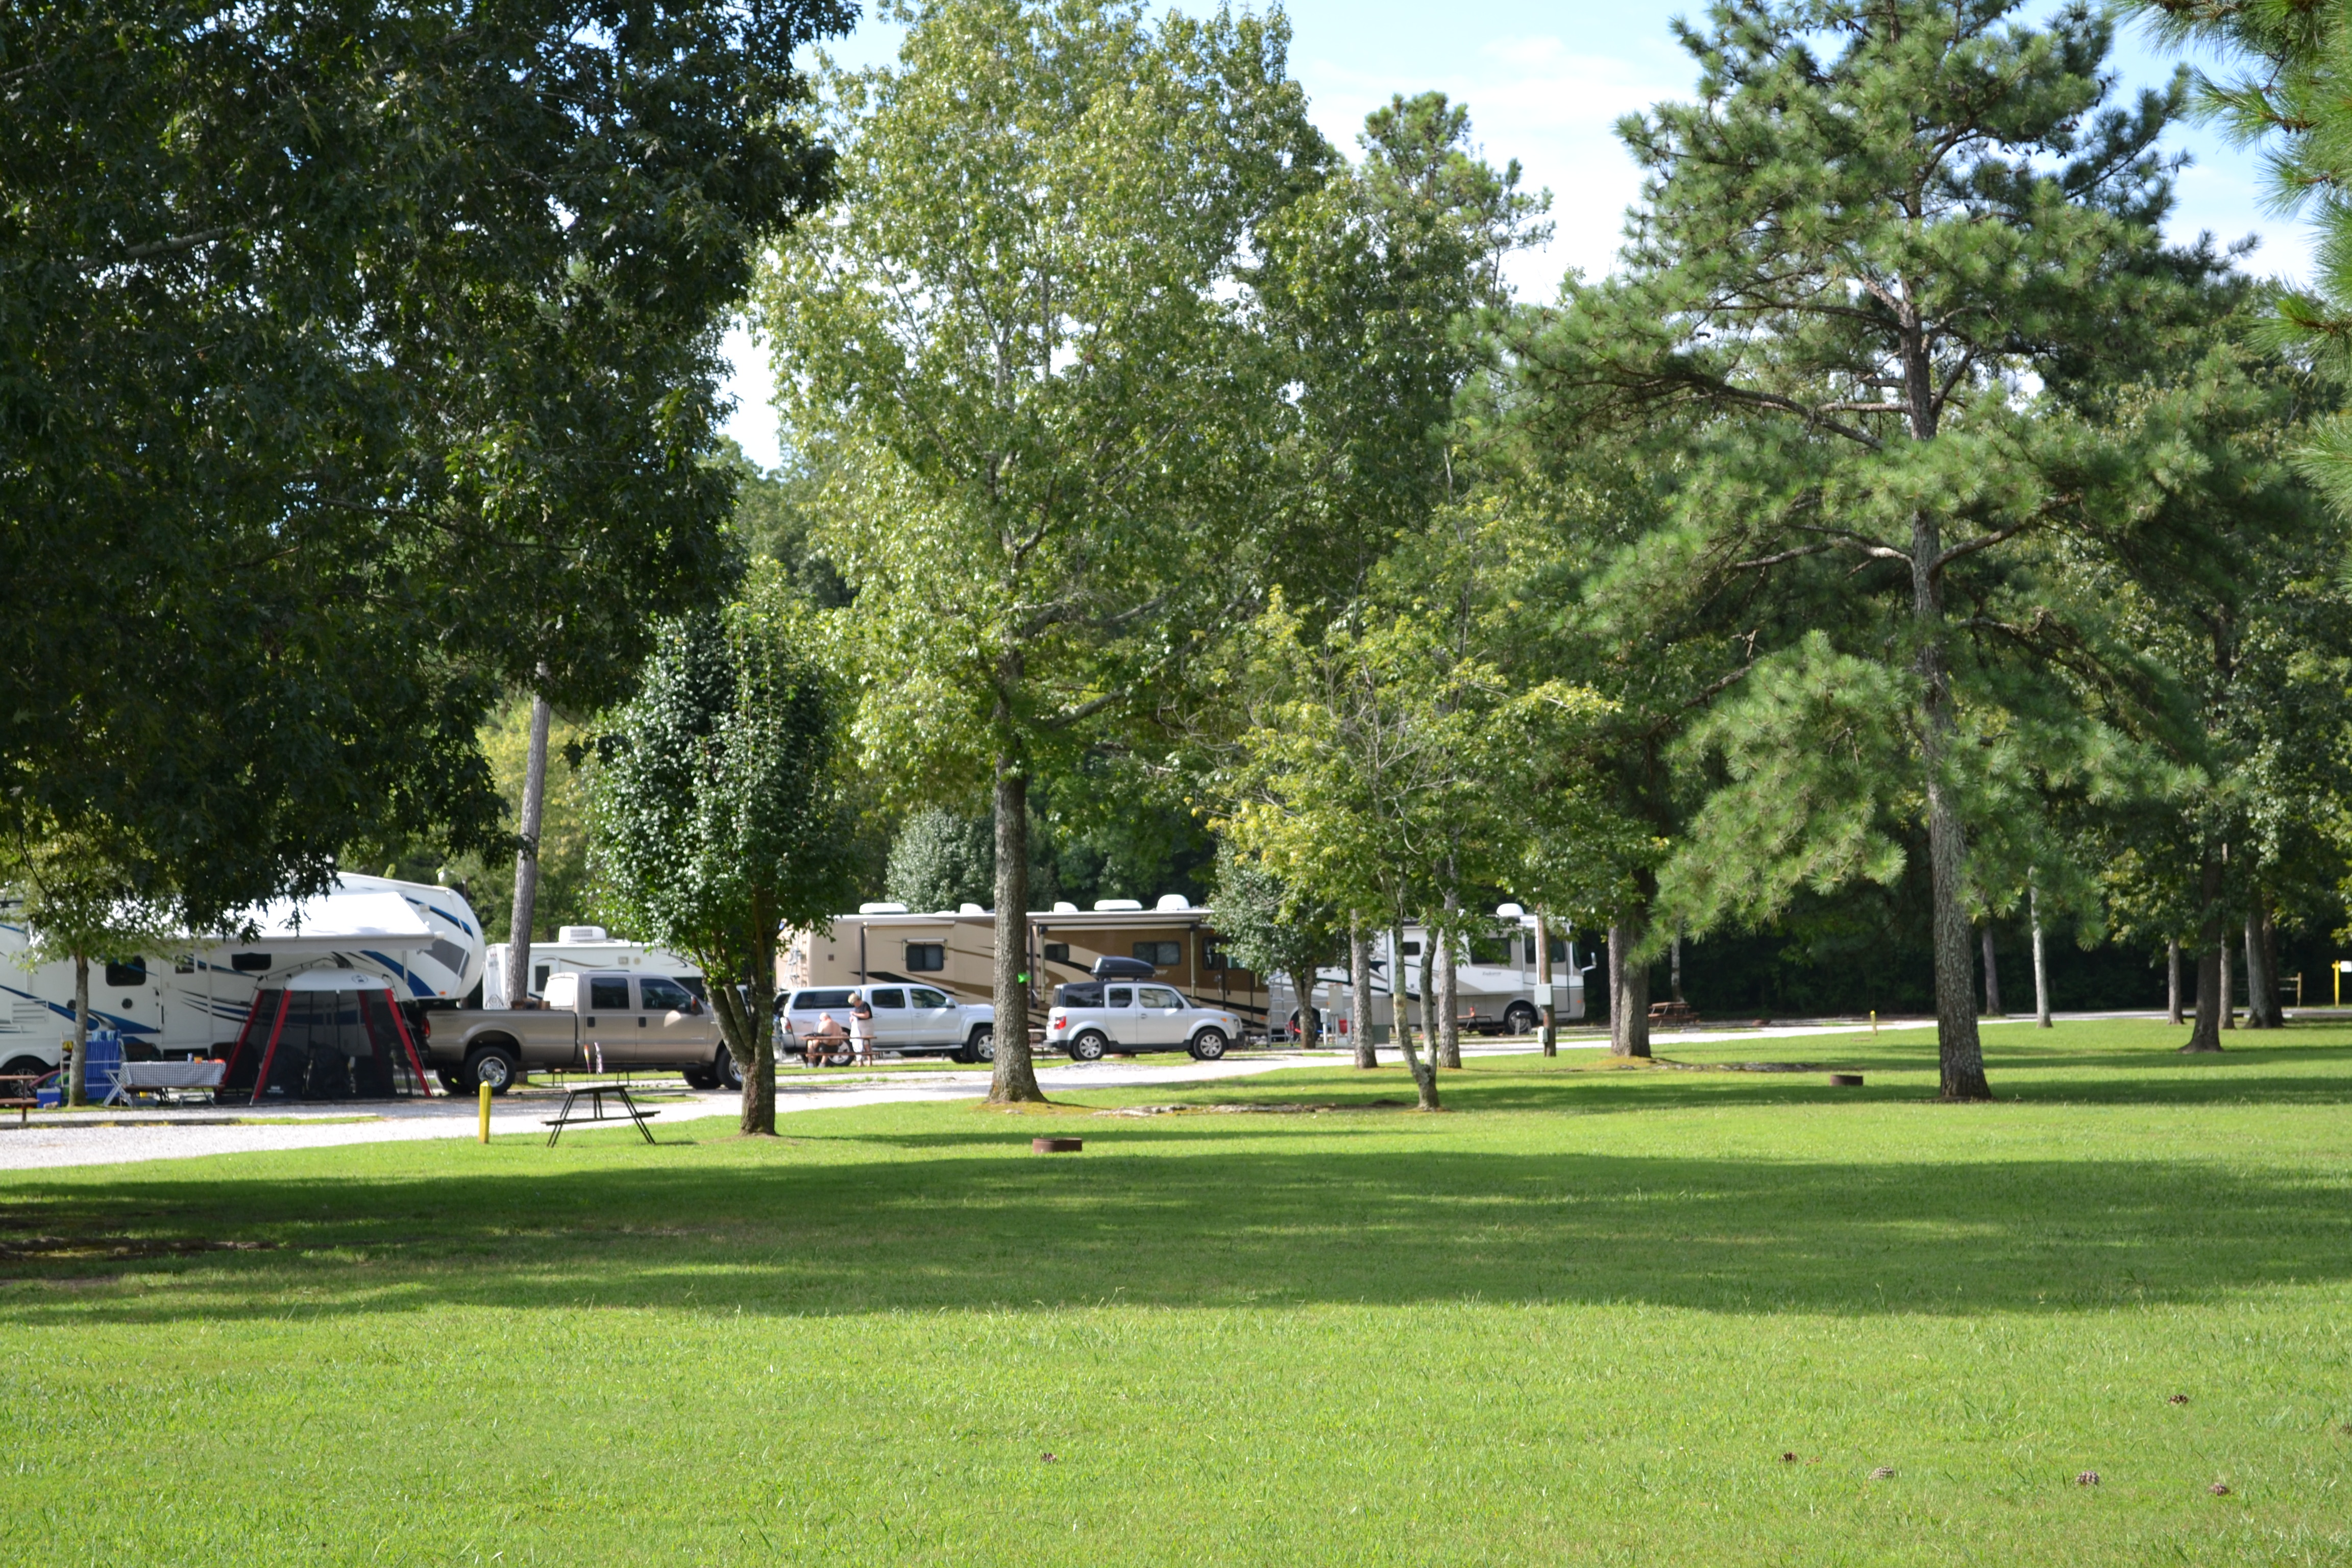 Chattanooga Holiday Travel Park - landscape with RVs